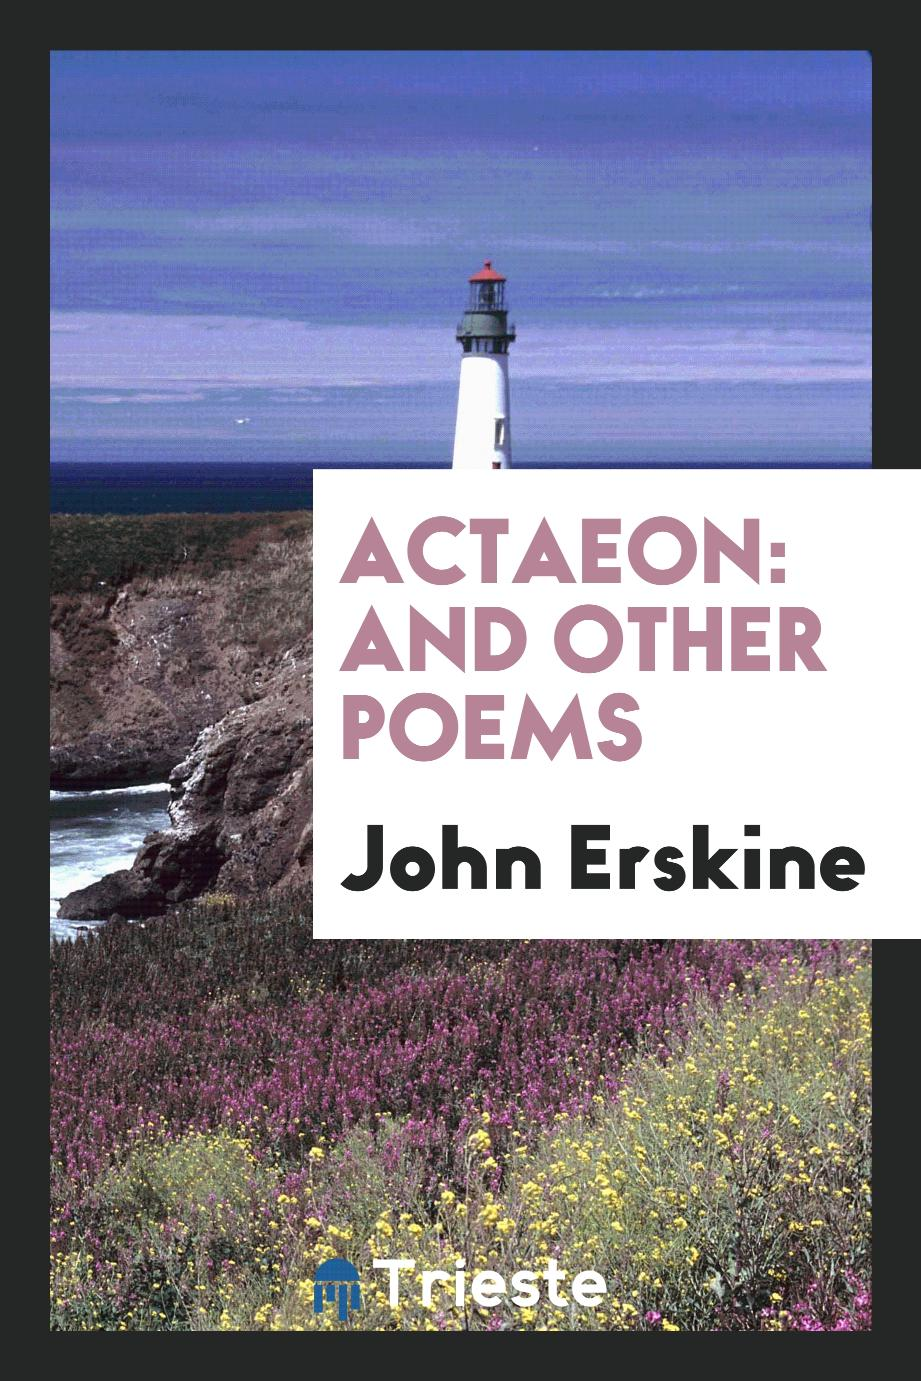 Actaeon: And Other Poems